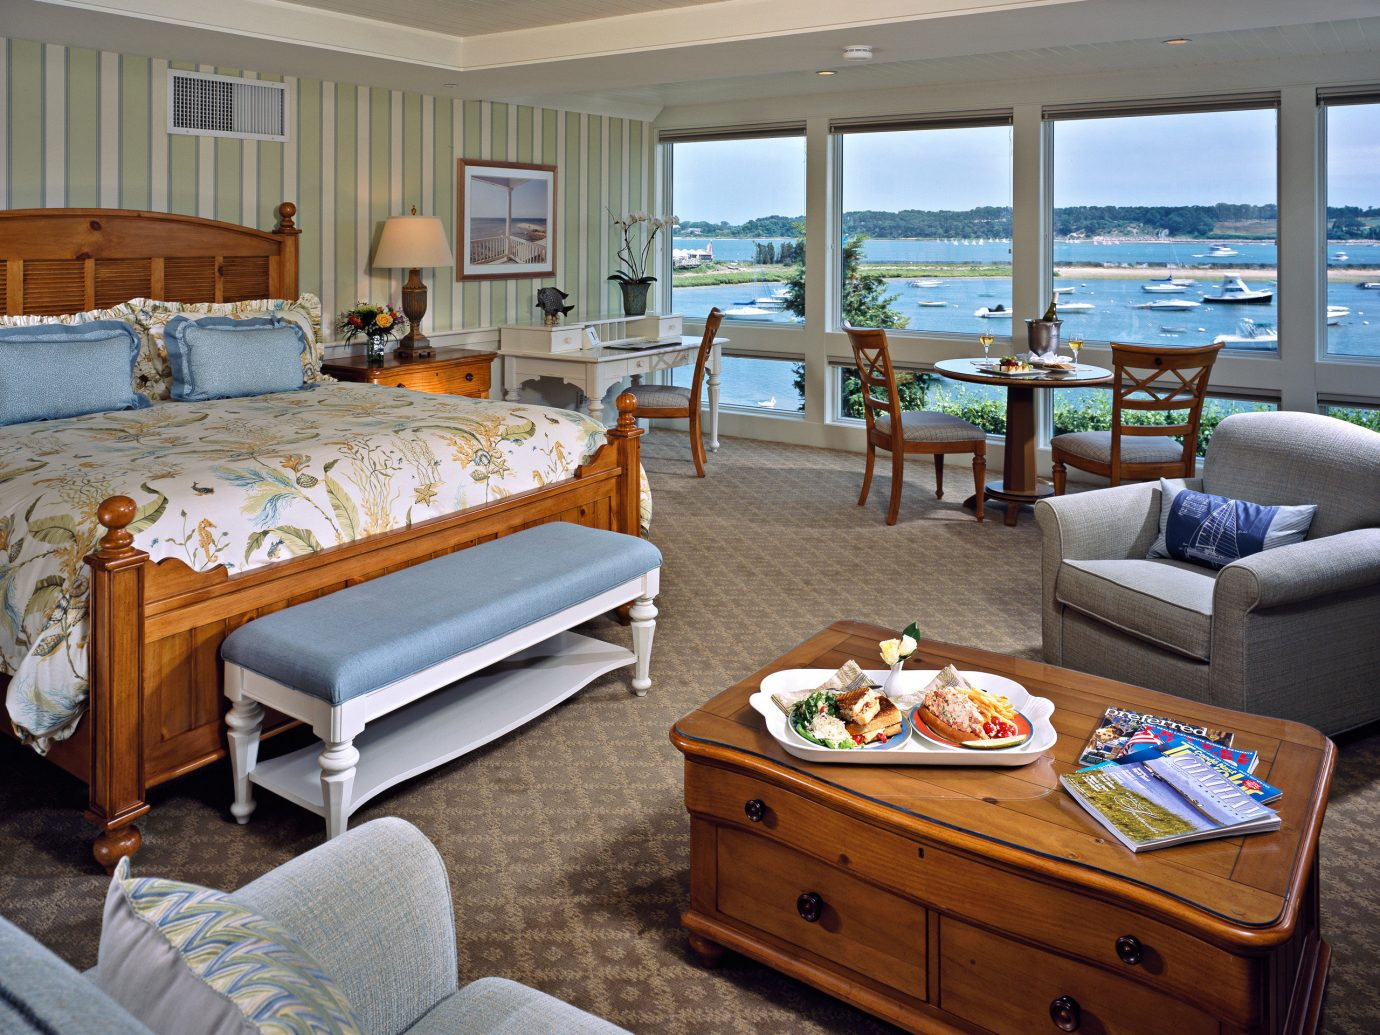 Bedroom Food + Drink Hotels Living Lounge Luxury Travel Resort Scenic views Trip Ideas Waterfront Weekend Getaways indoor floor room window property estate passenger ship ceiling yacht Suite home cottage furniture real estate living room interior design Villa apartment several